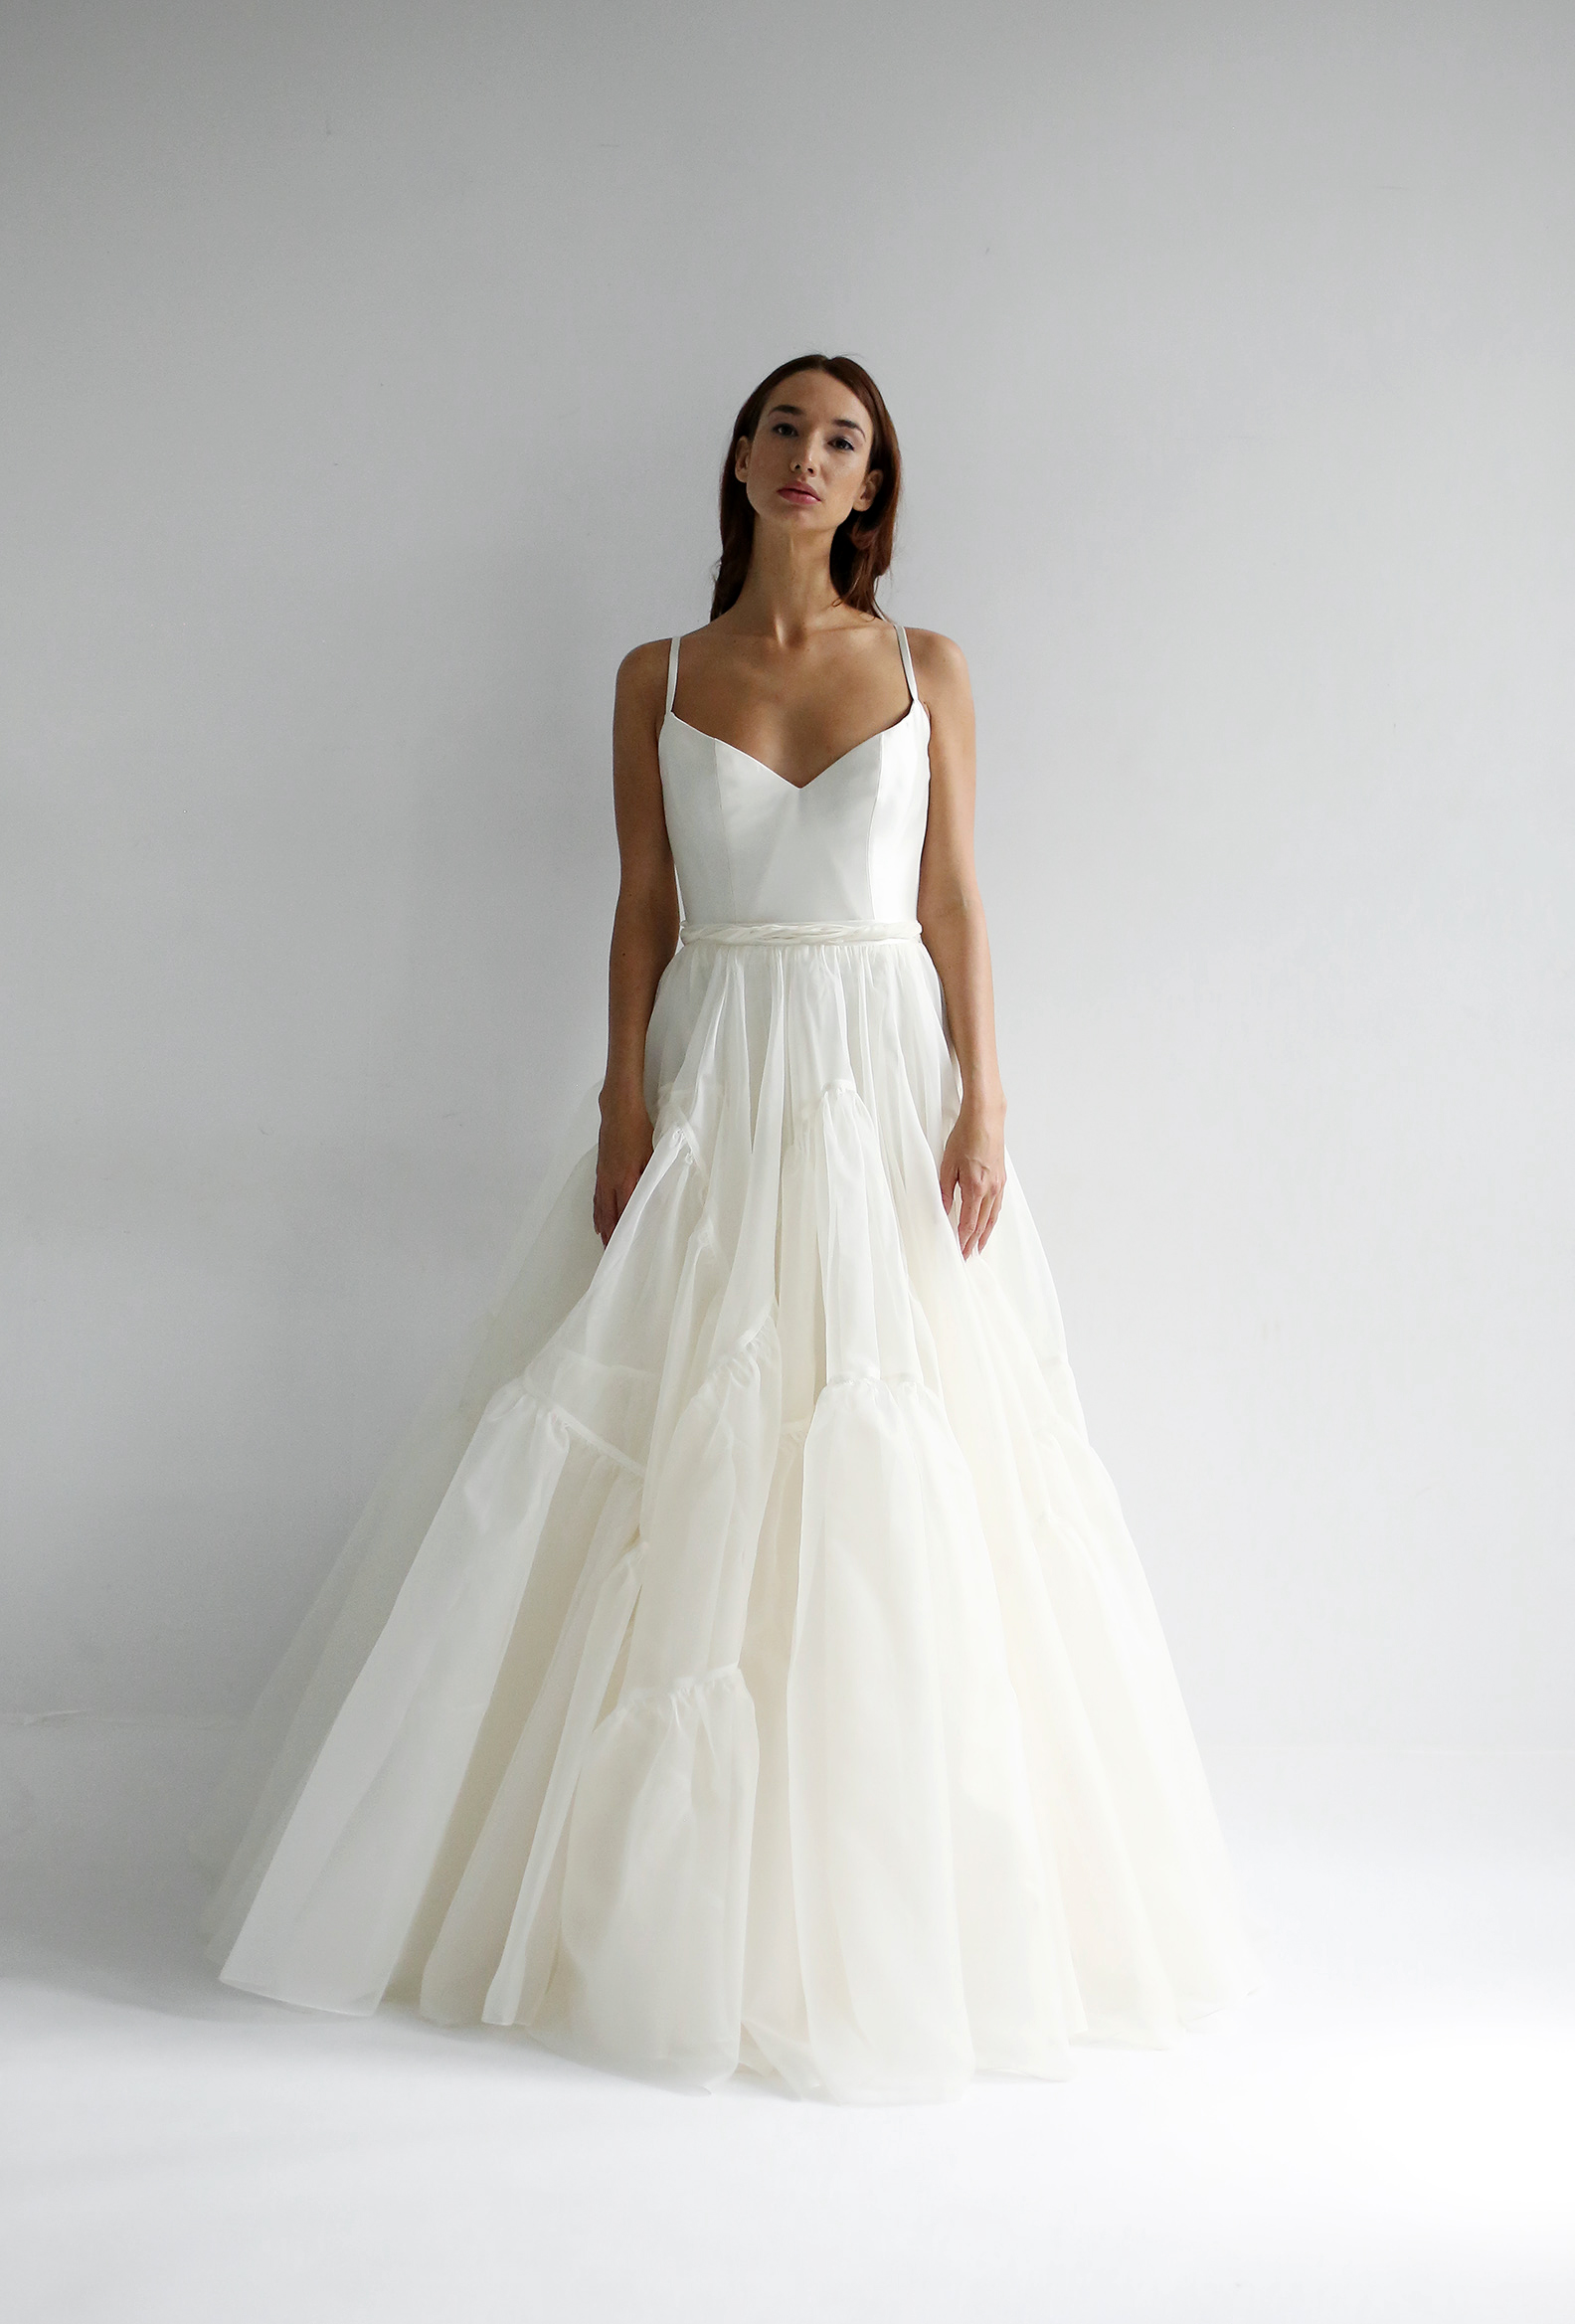 leanne marshall wedding dress spring 2019 spaghetti strap ruffles a-line